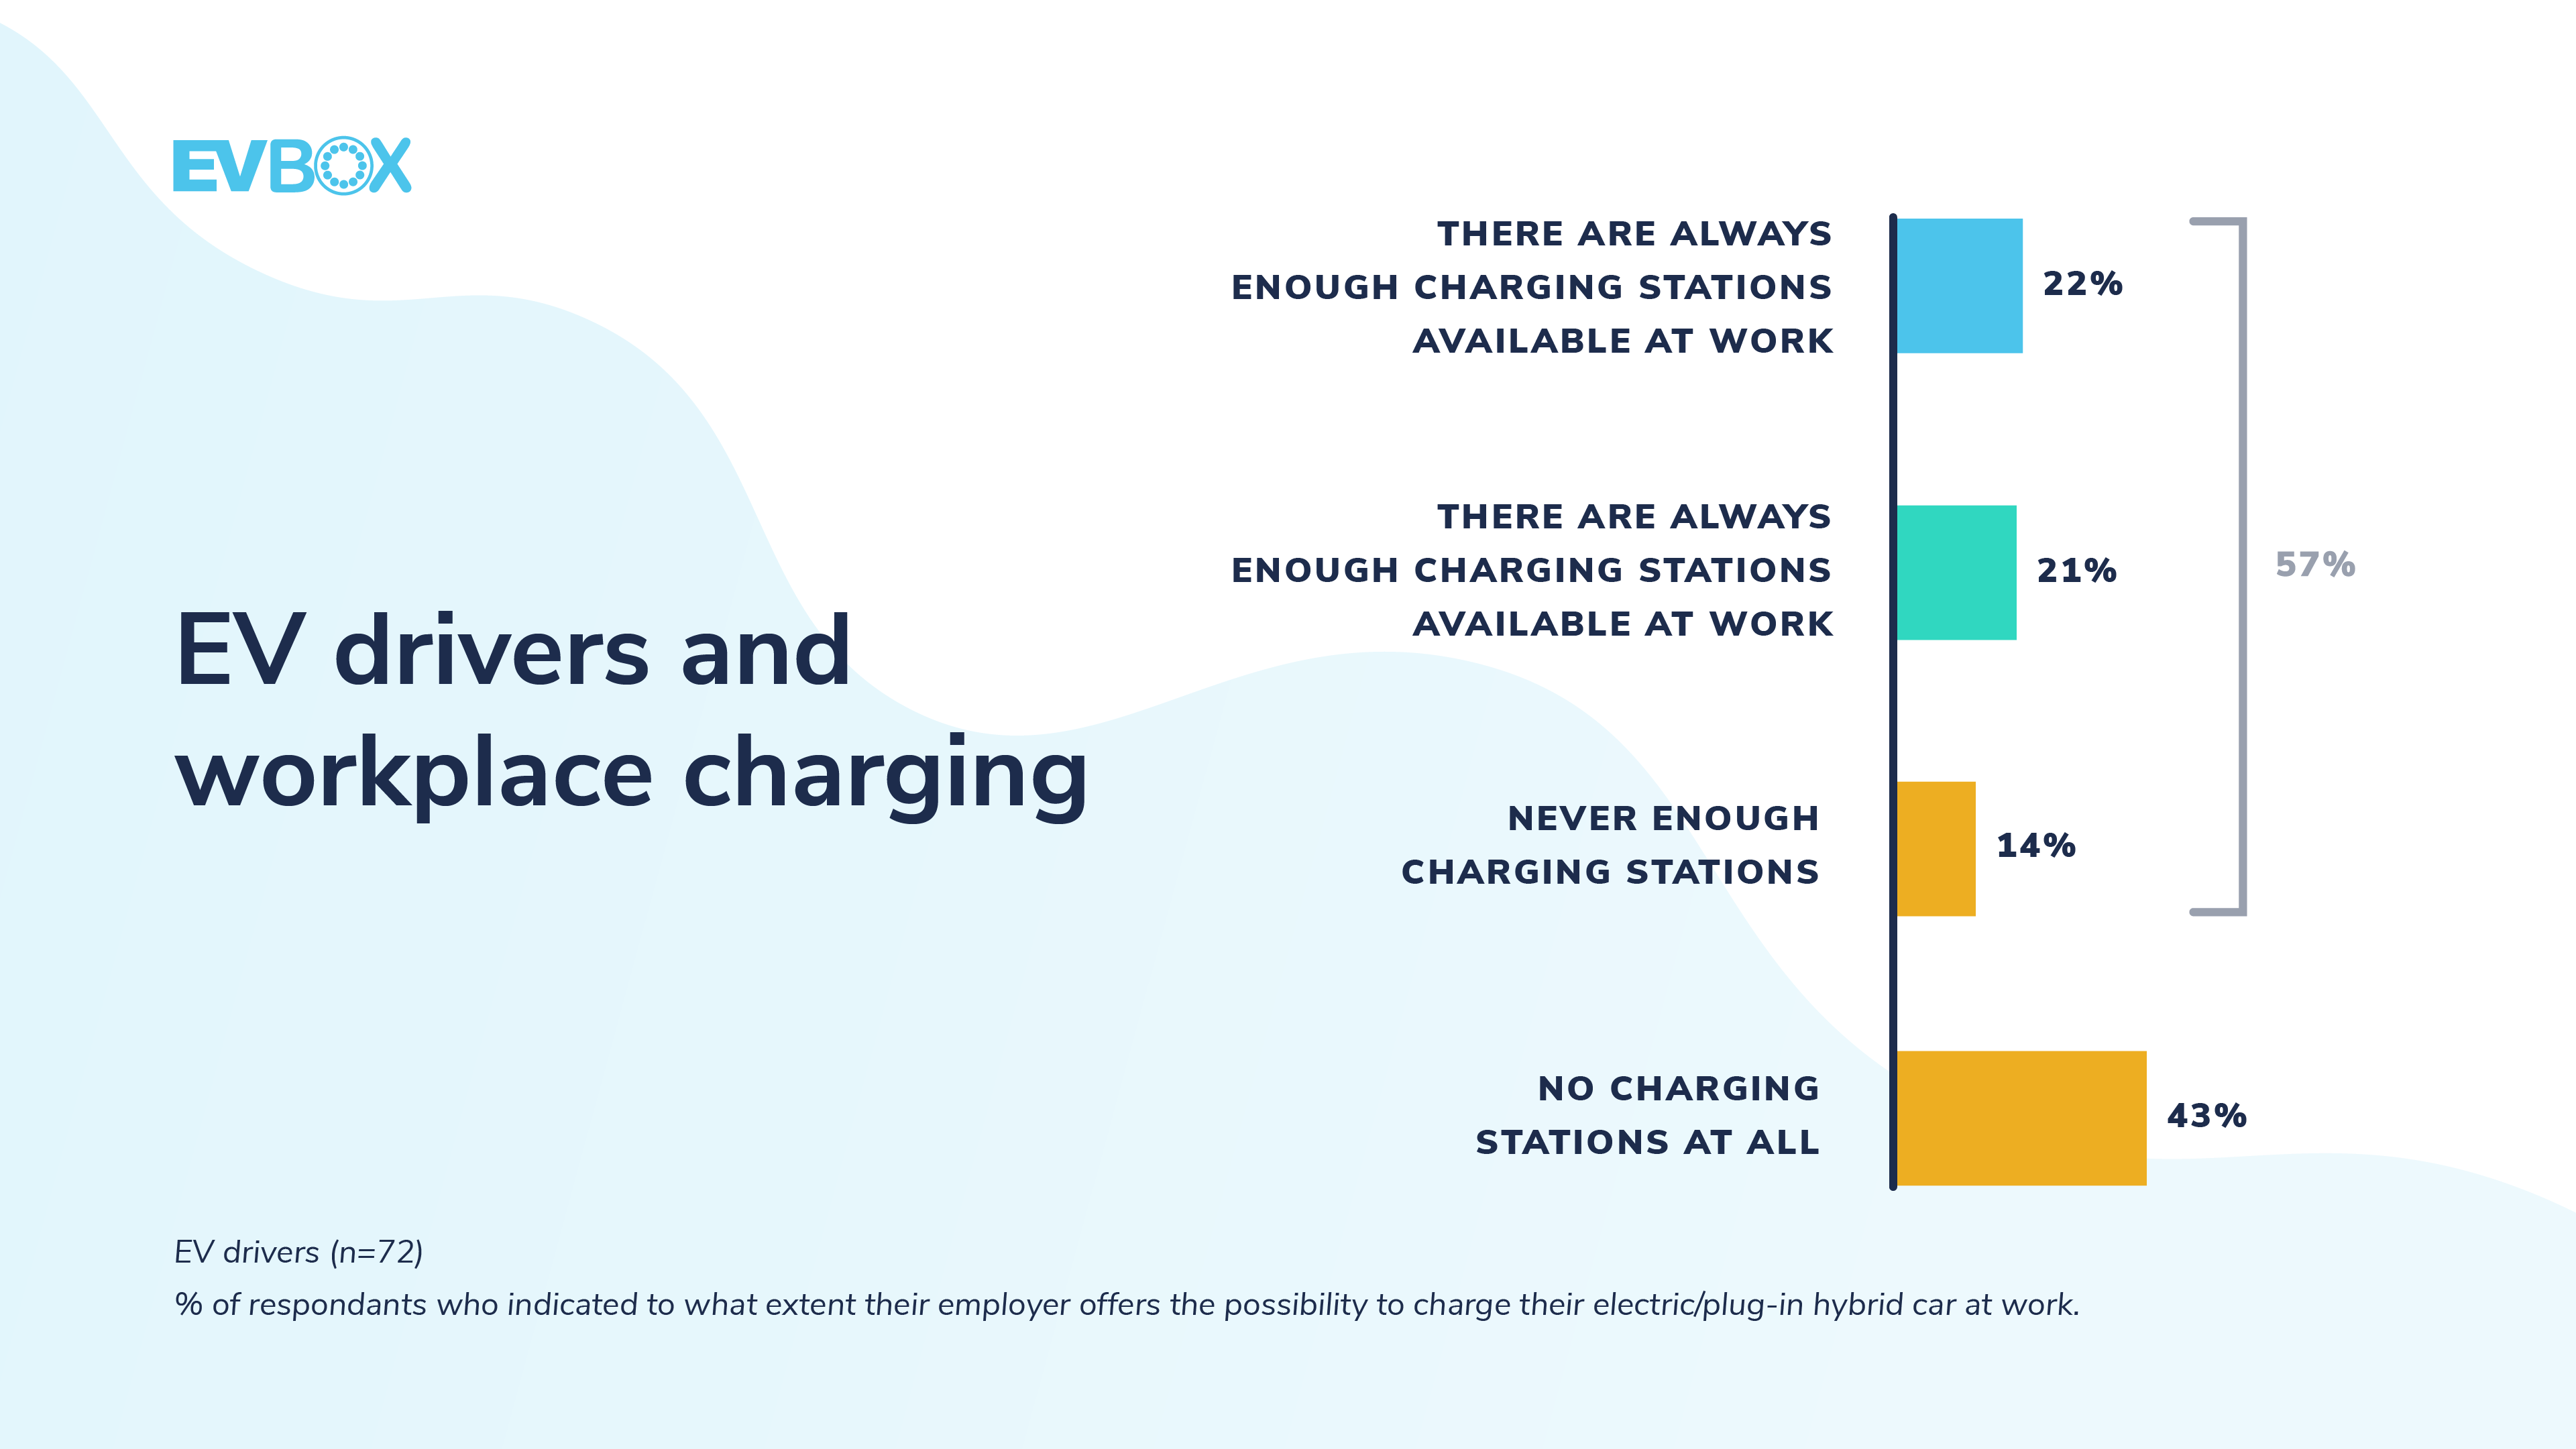 EV drivers and workplace charging